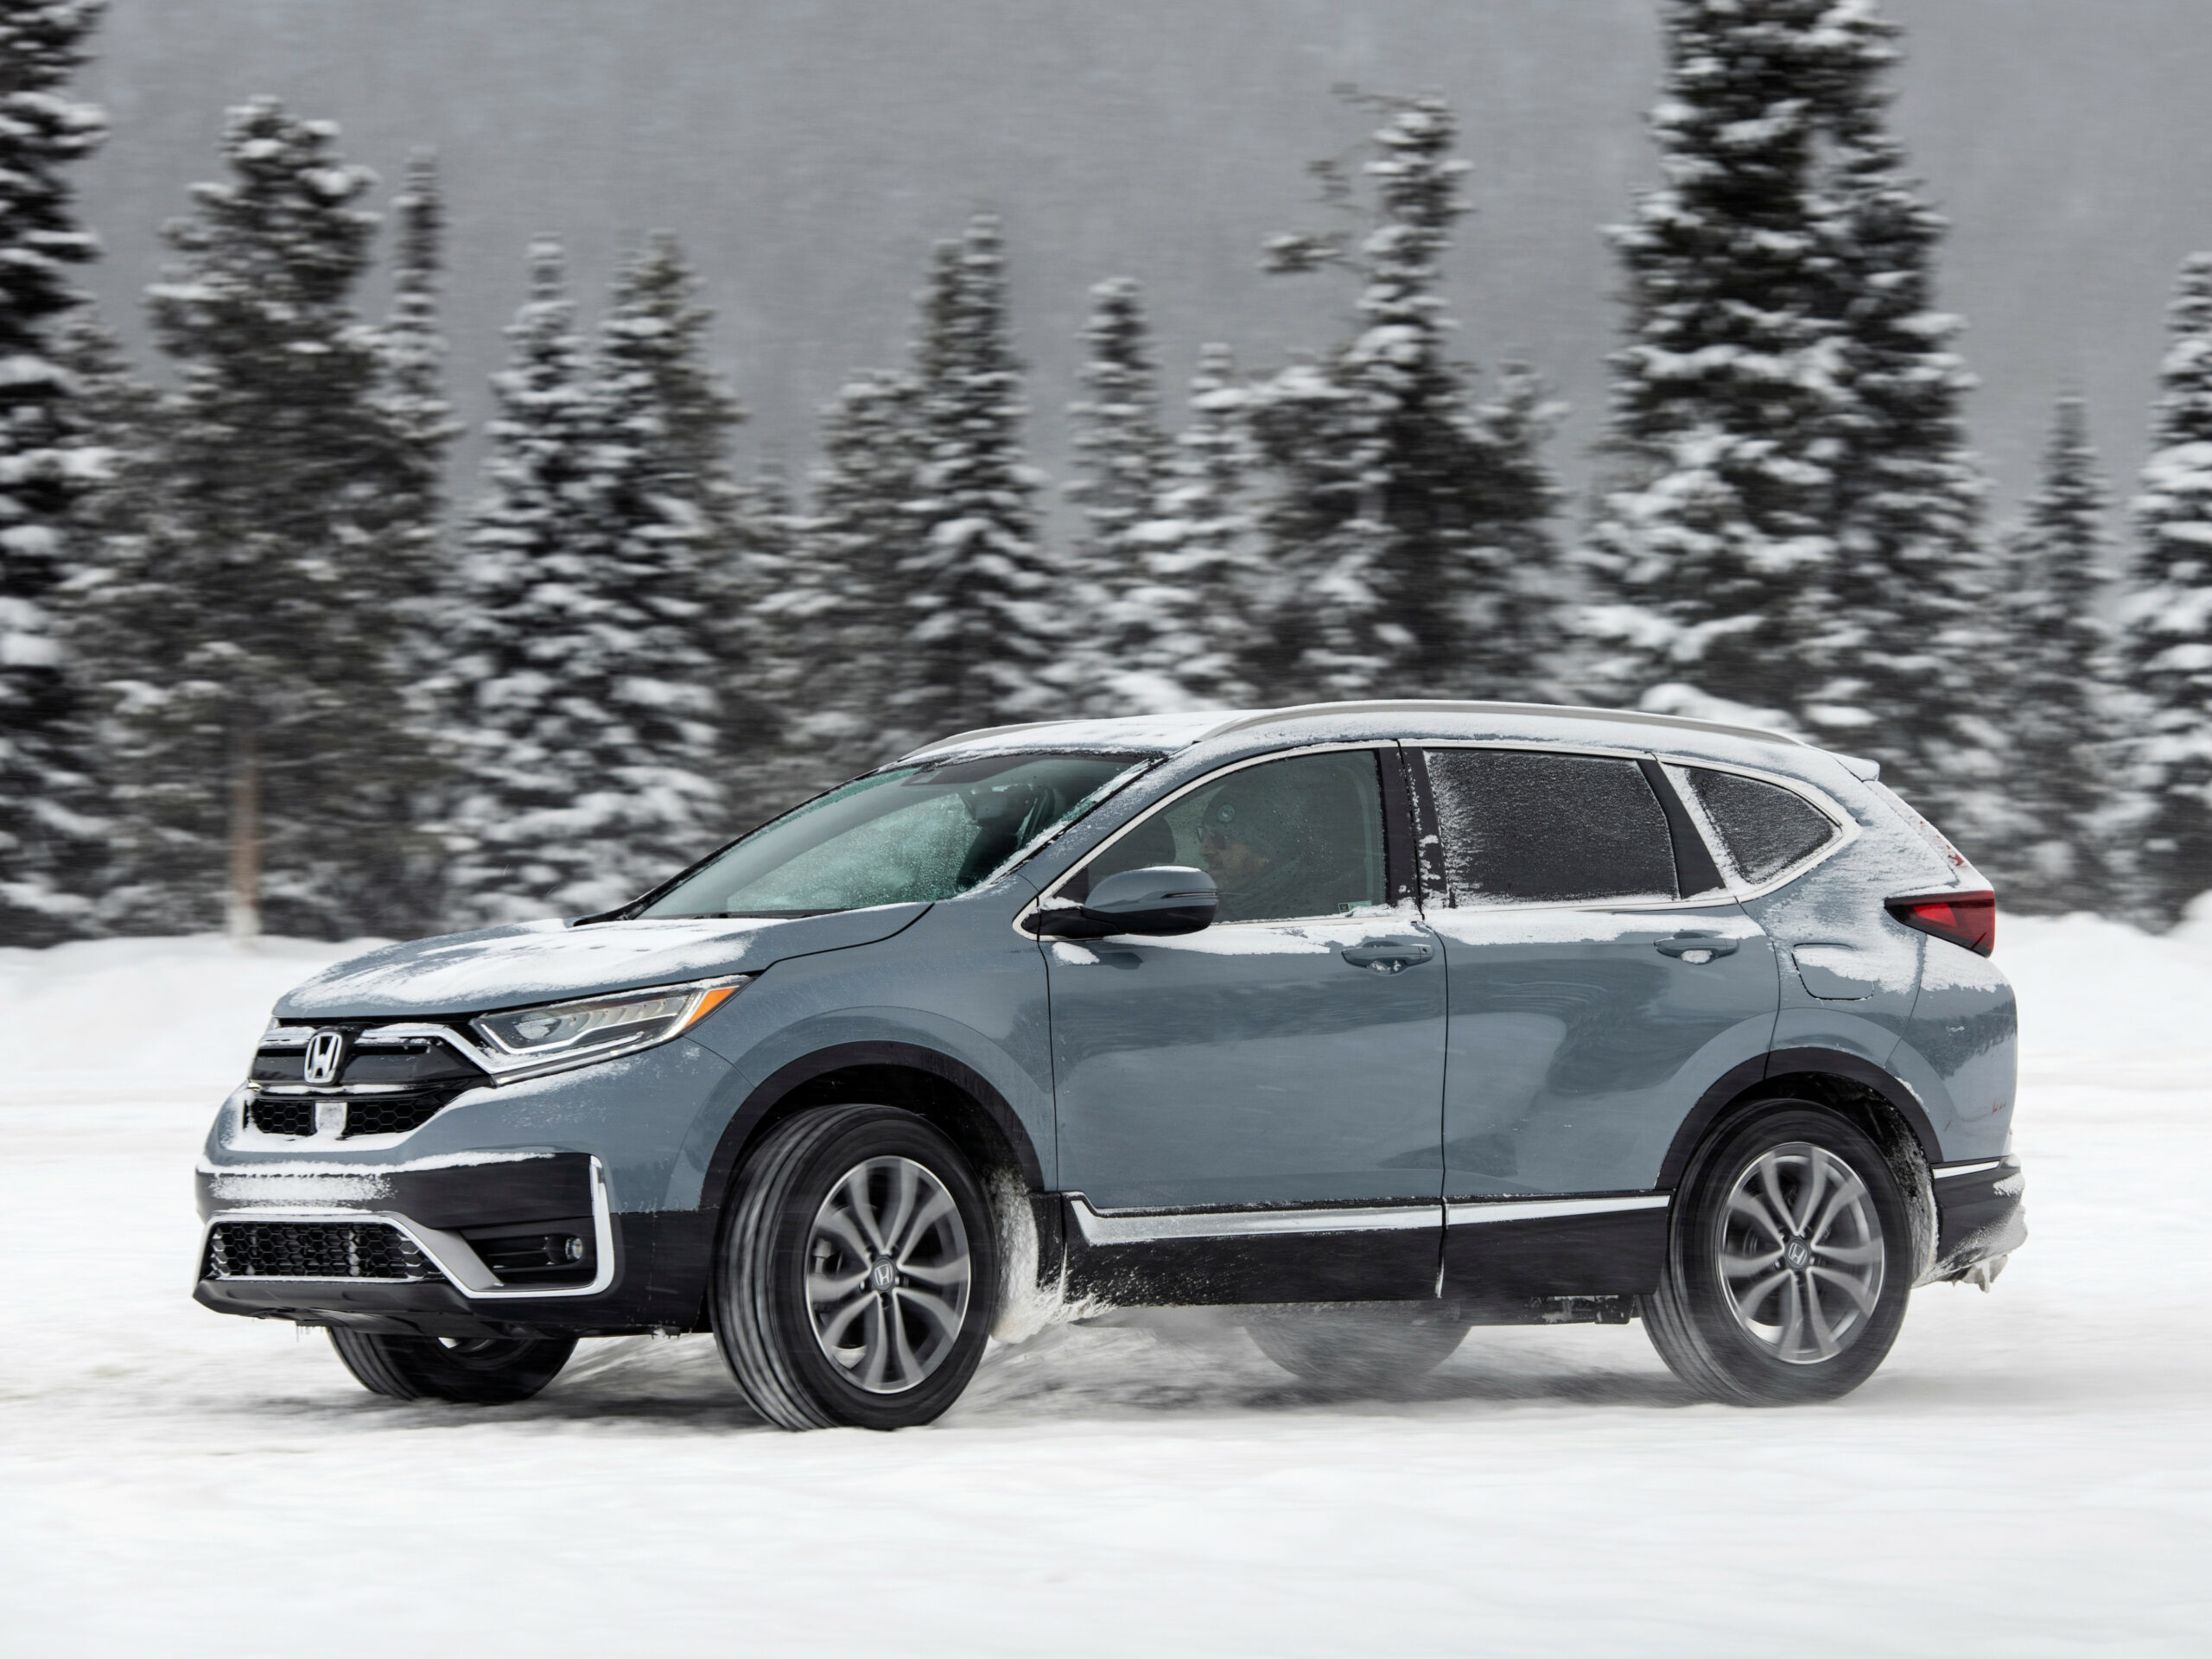 Honda Real Time AWD vs. Acura Super Handling All-Wheel Drive ...